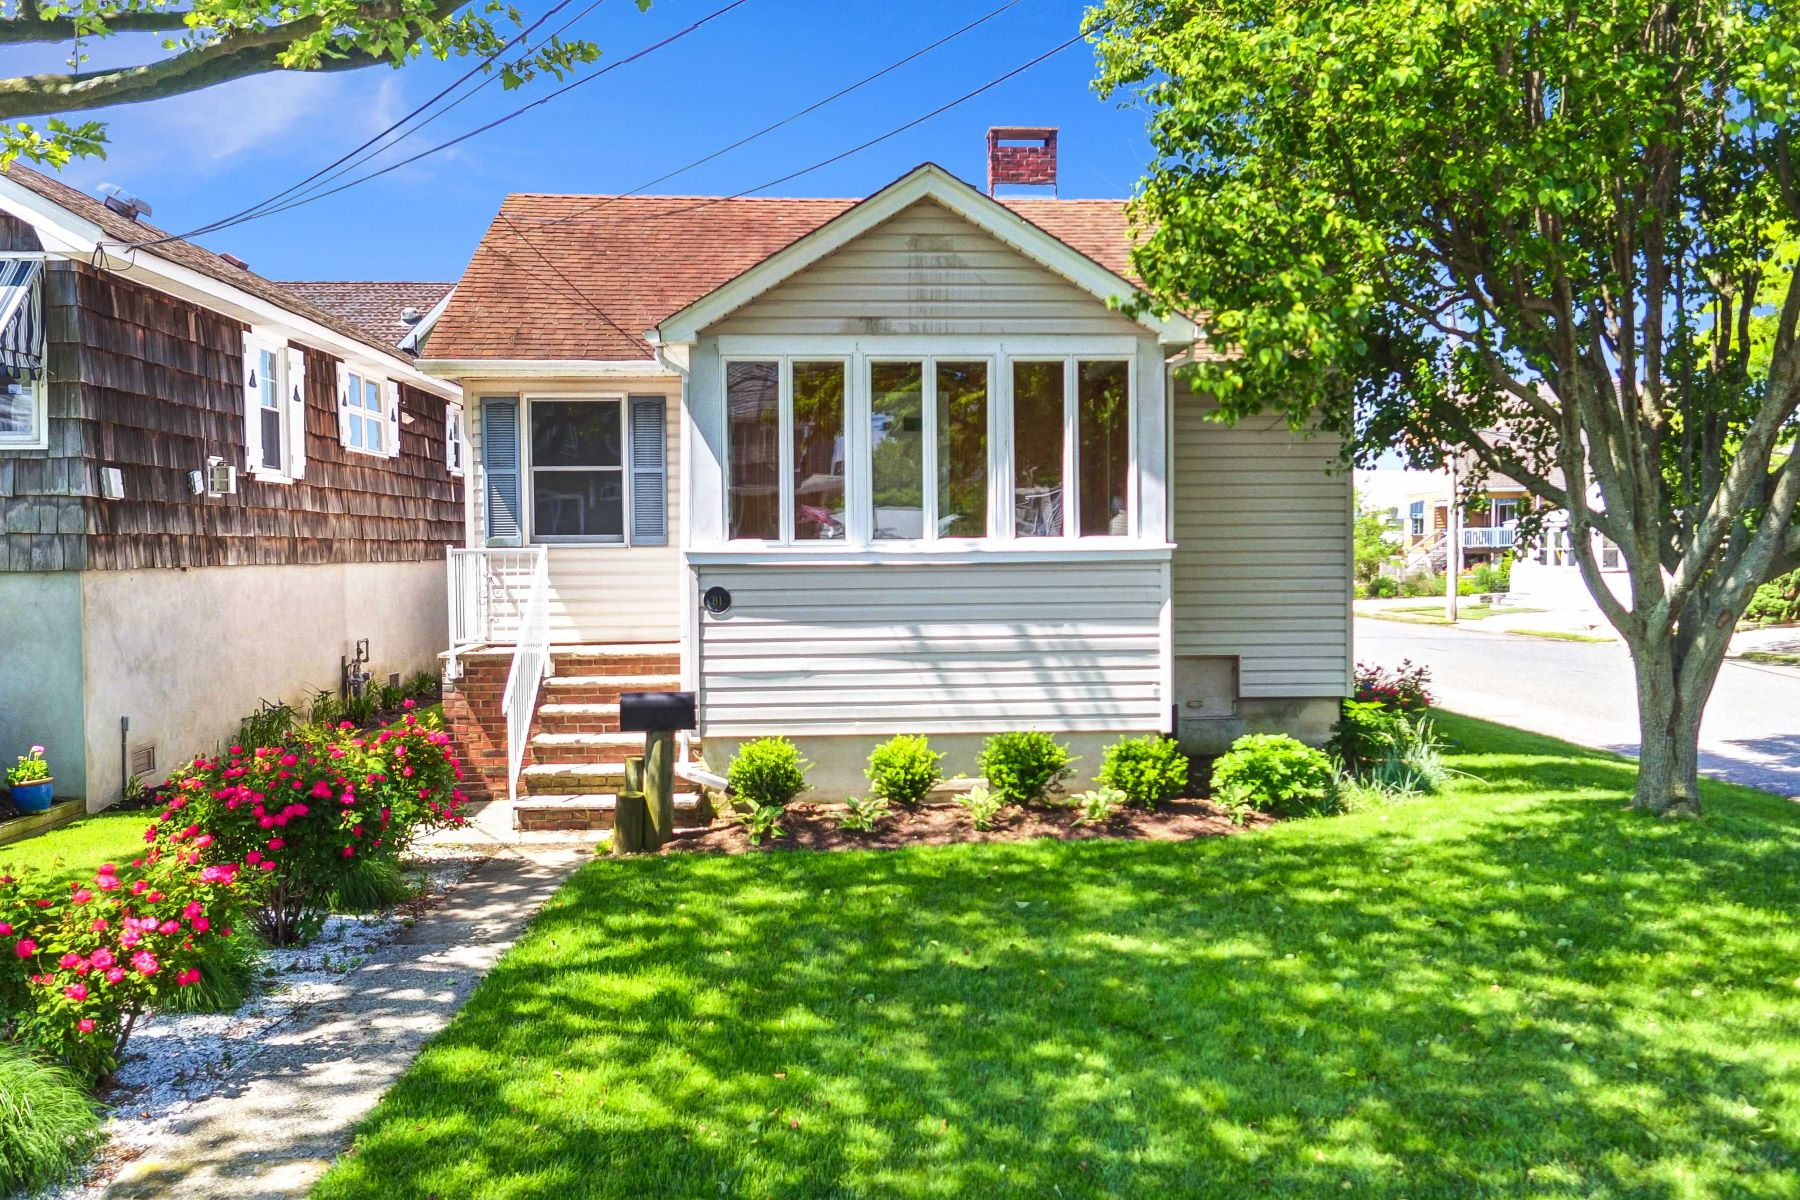 Single Family Home for Sale at Manasquan Beach House 81 Rogers Ave Manasquan, New Jersey 08736 United States